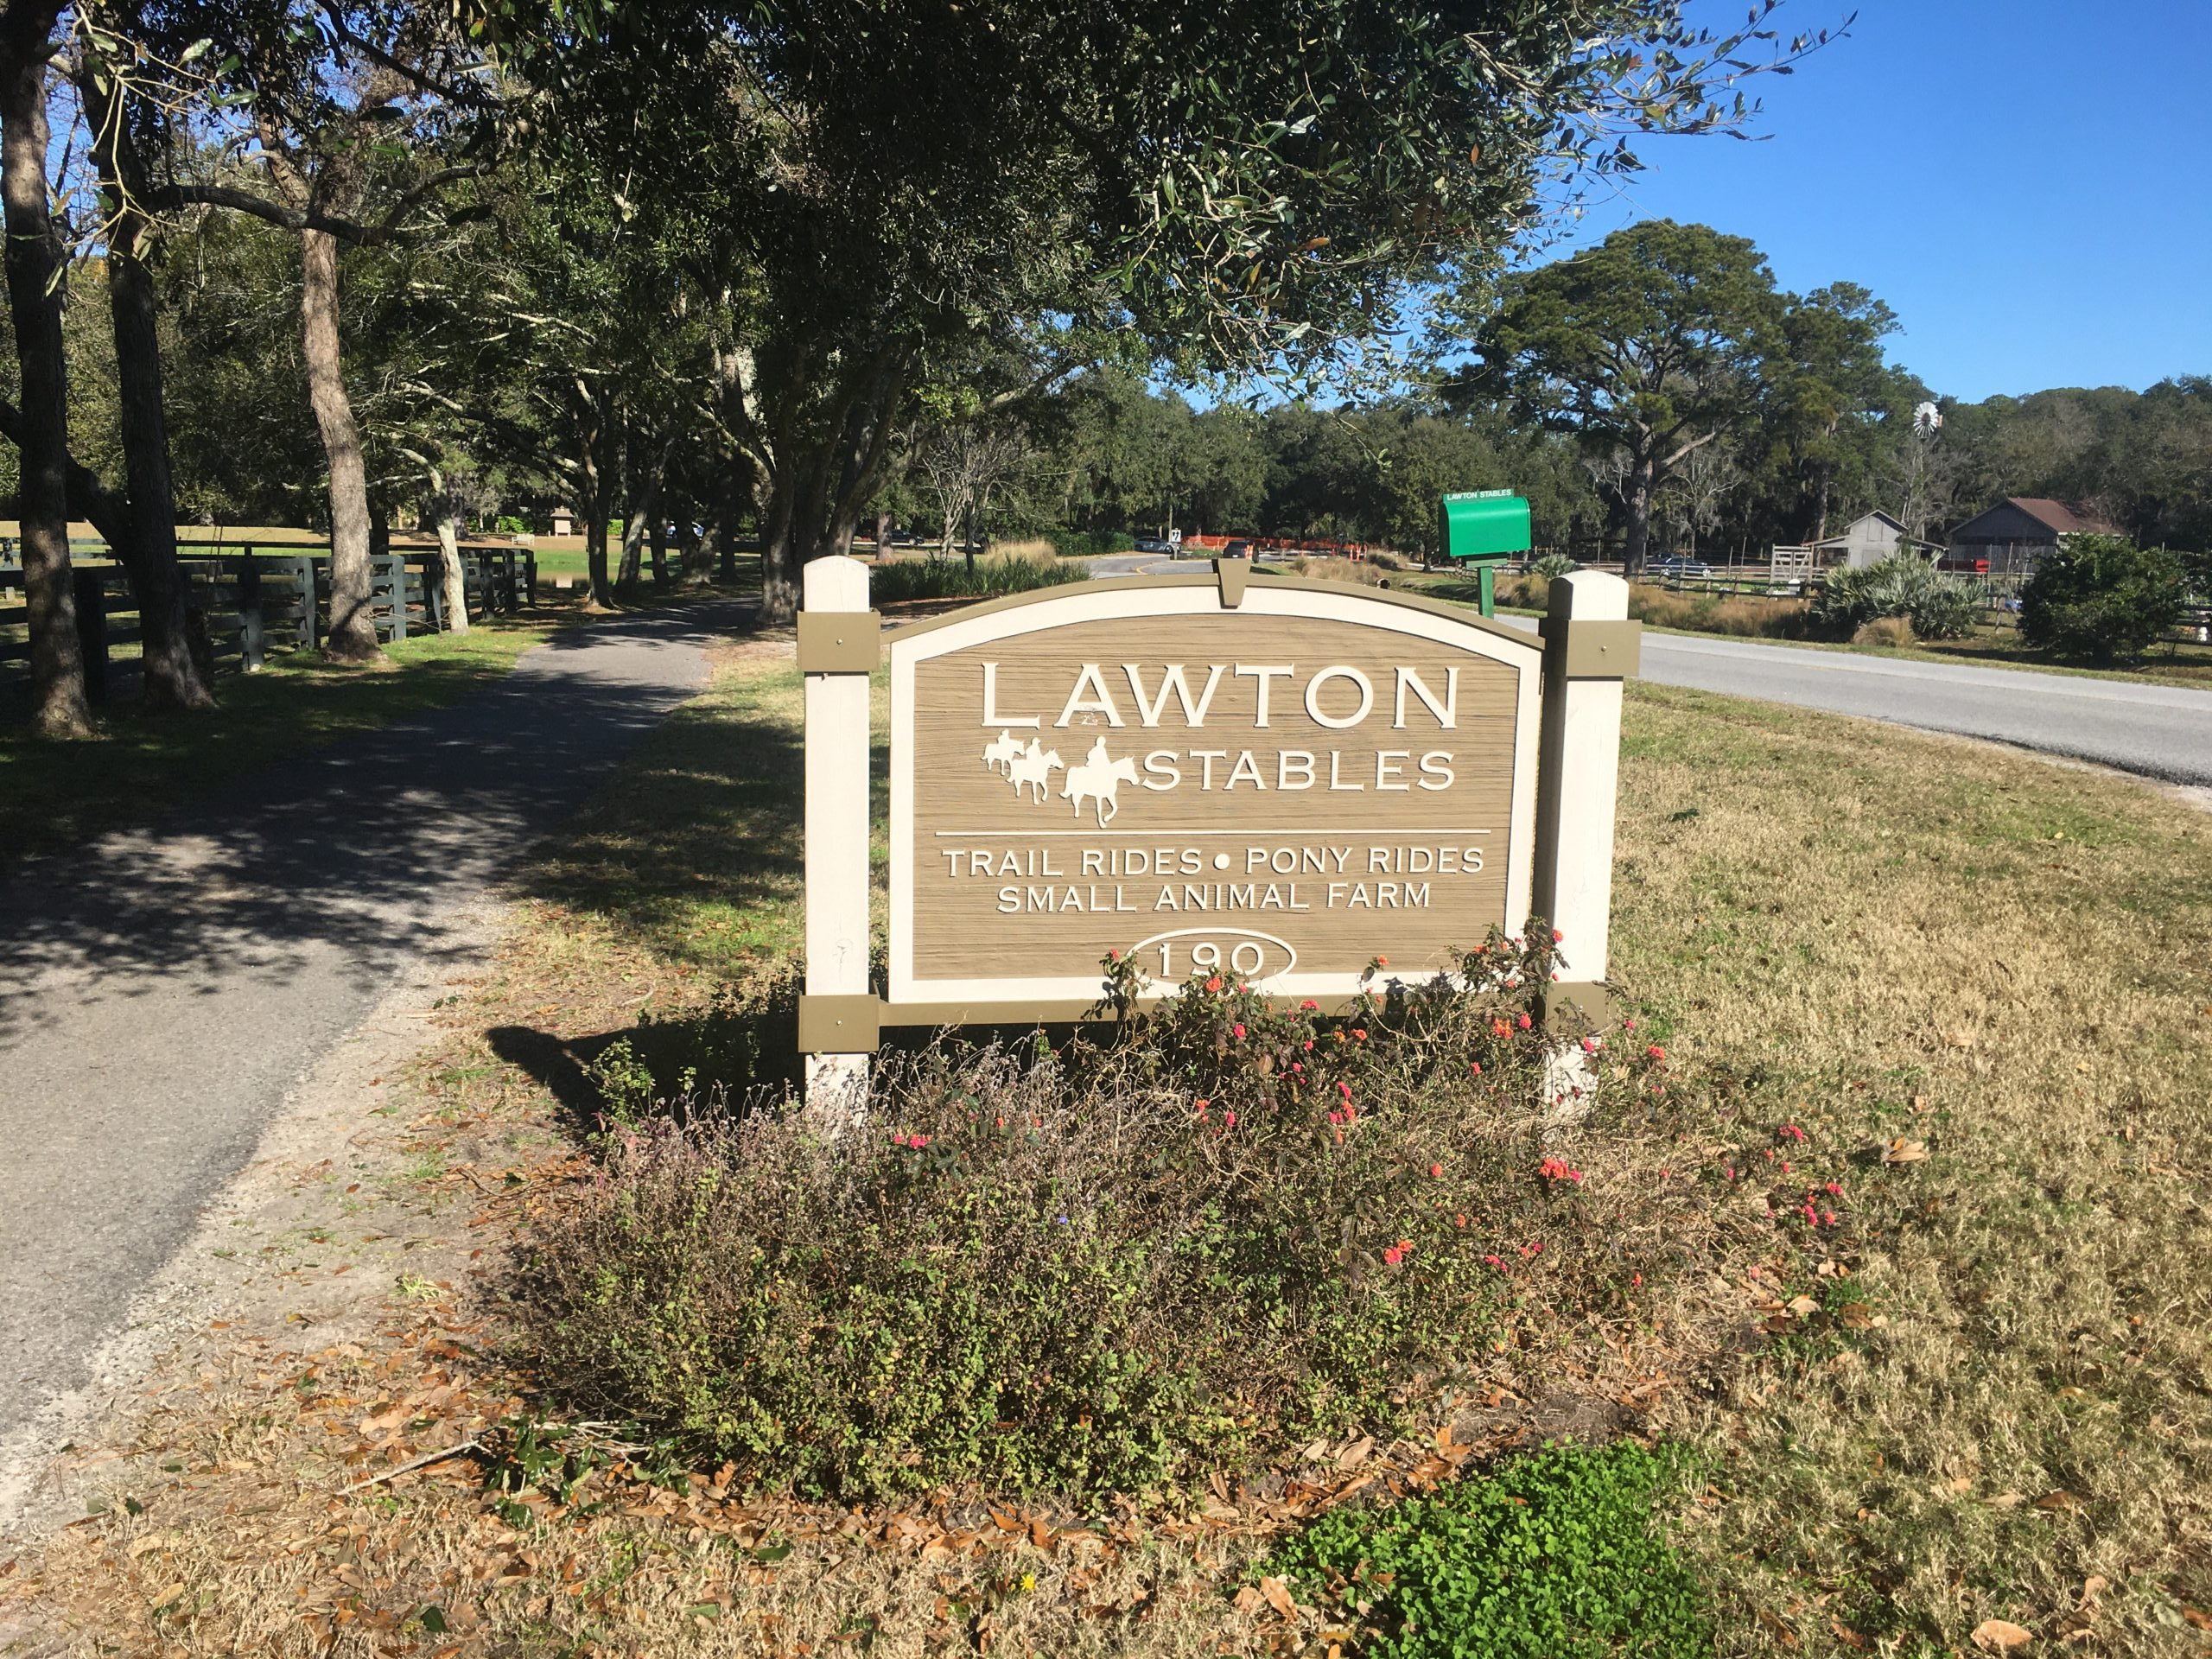 Spring's Featured Attraction: Lawton Stables